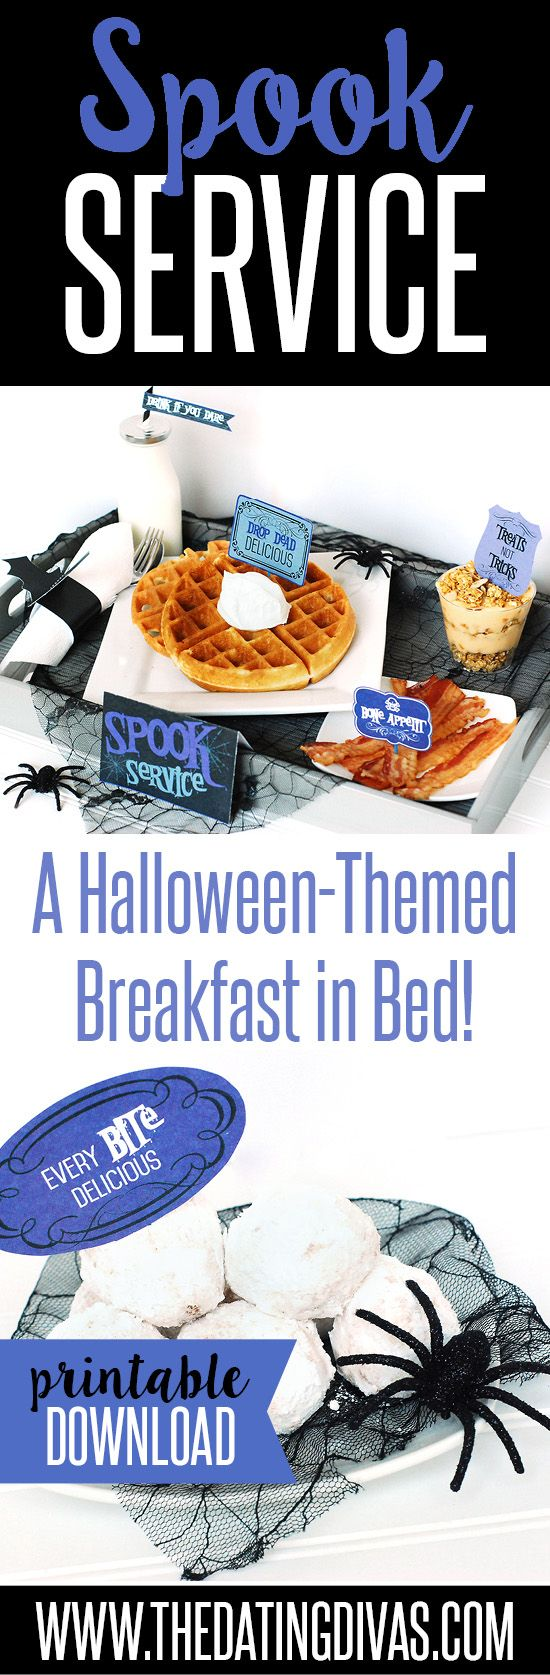 "Halloween themed Breakfast in Bed Idea!! Who wouldn't love a delicious surprise from the ""Dead and Breakfast"" Inn?! Printable downloads included! From The Dating Divas"